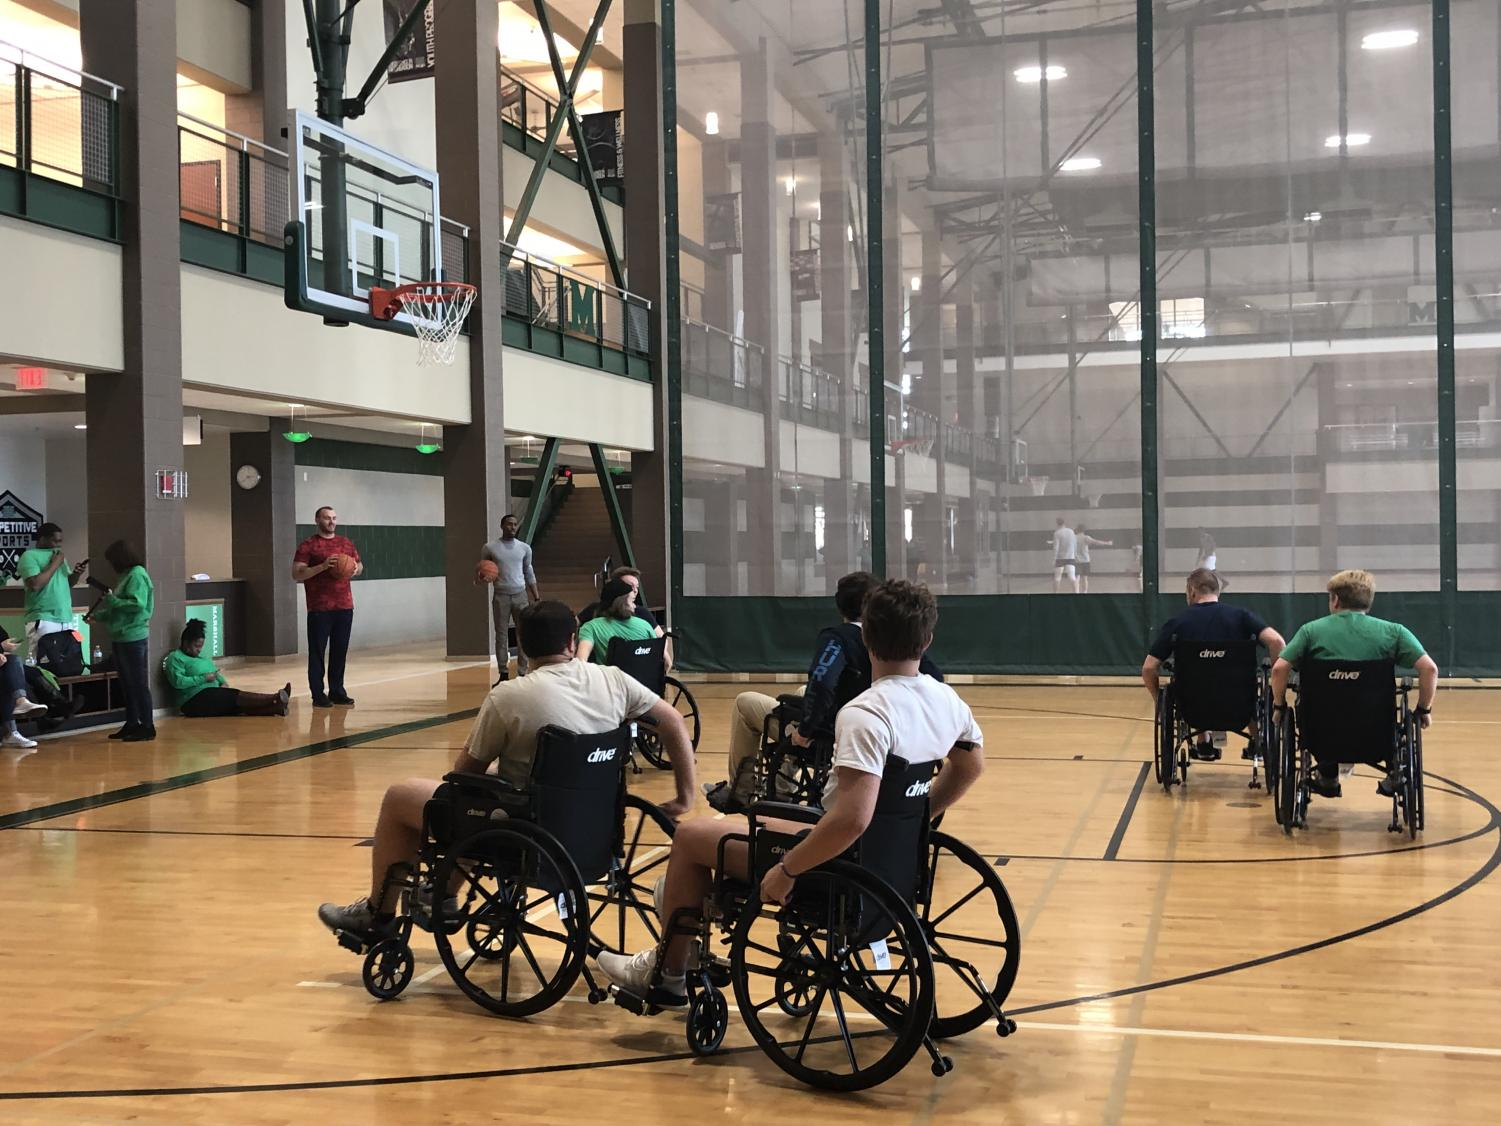 Members of Marshall University Greek Life participate in Wheelchair Basketball, an awareness event for Developmental Disabilities Awareness Month, Friday in the Marshall Recreation Center.